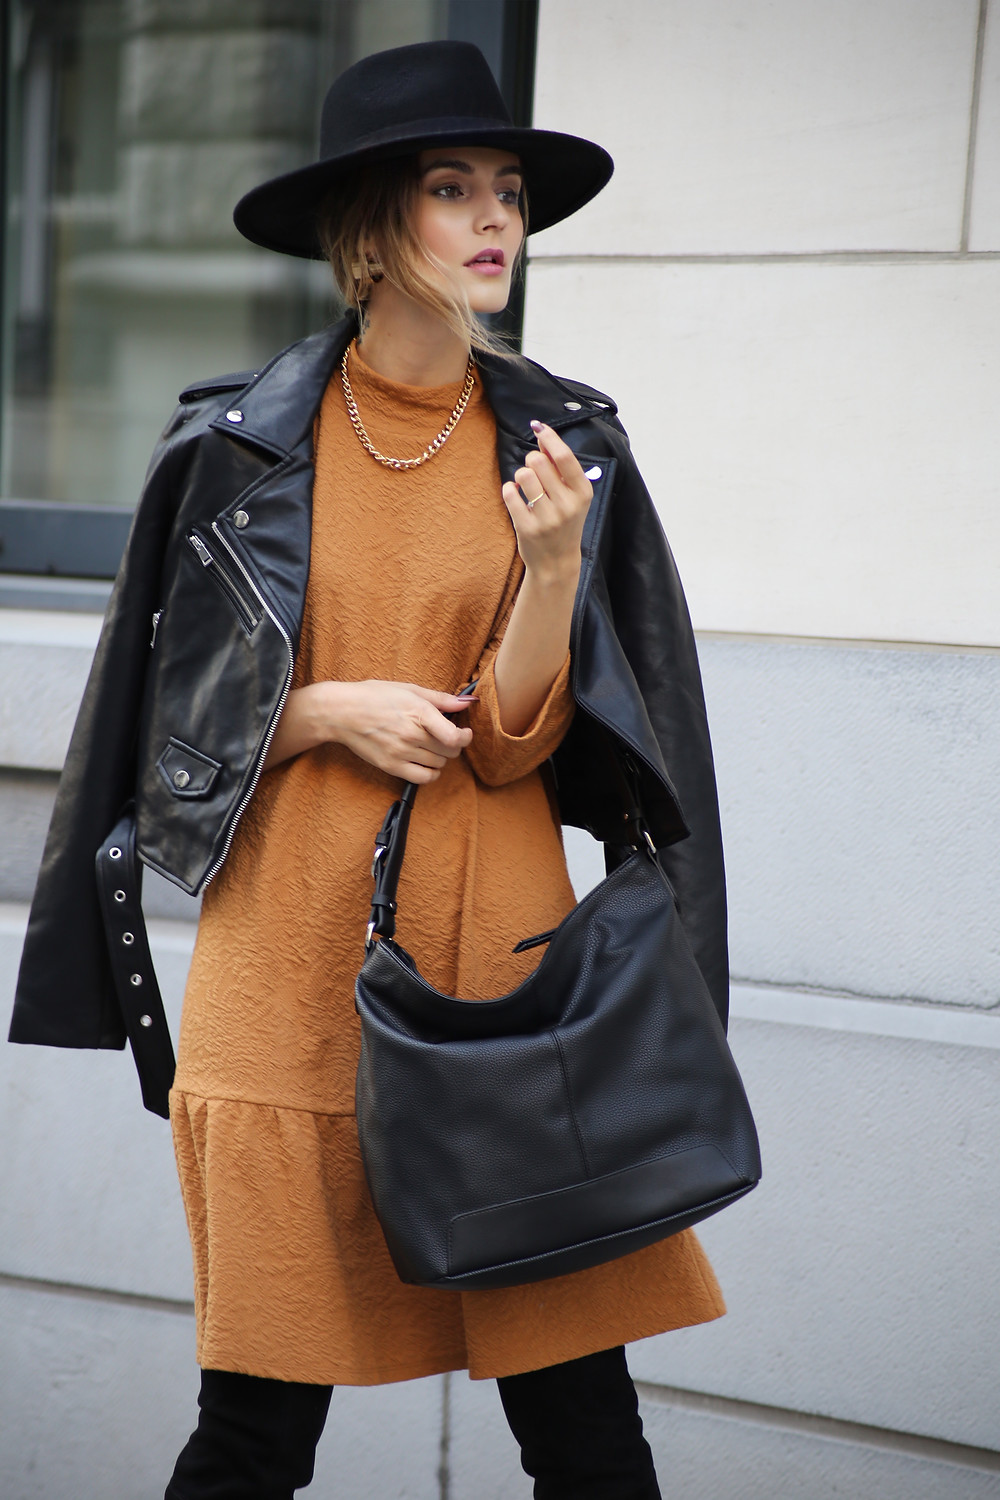 earth-tones-outfit.jpg